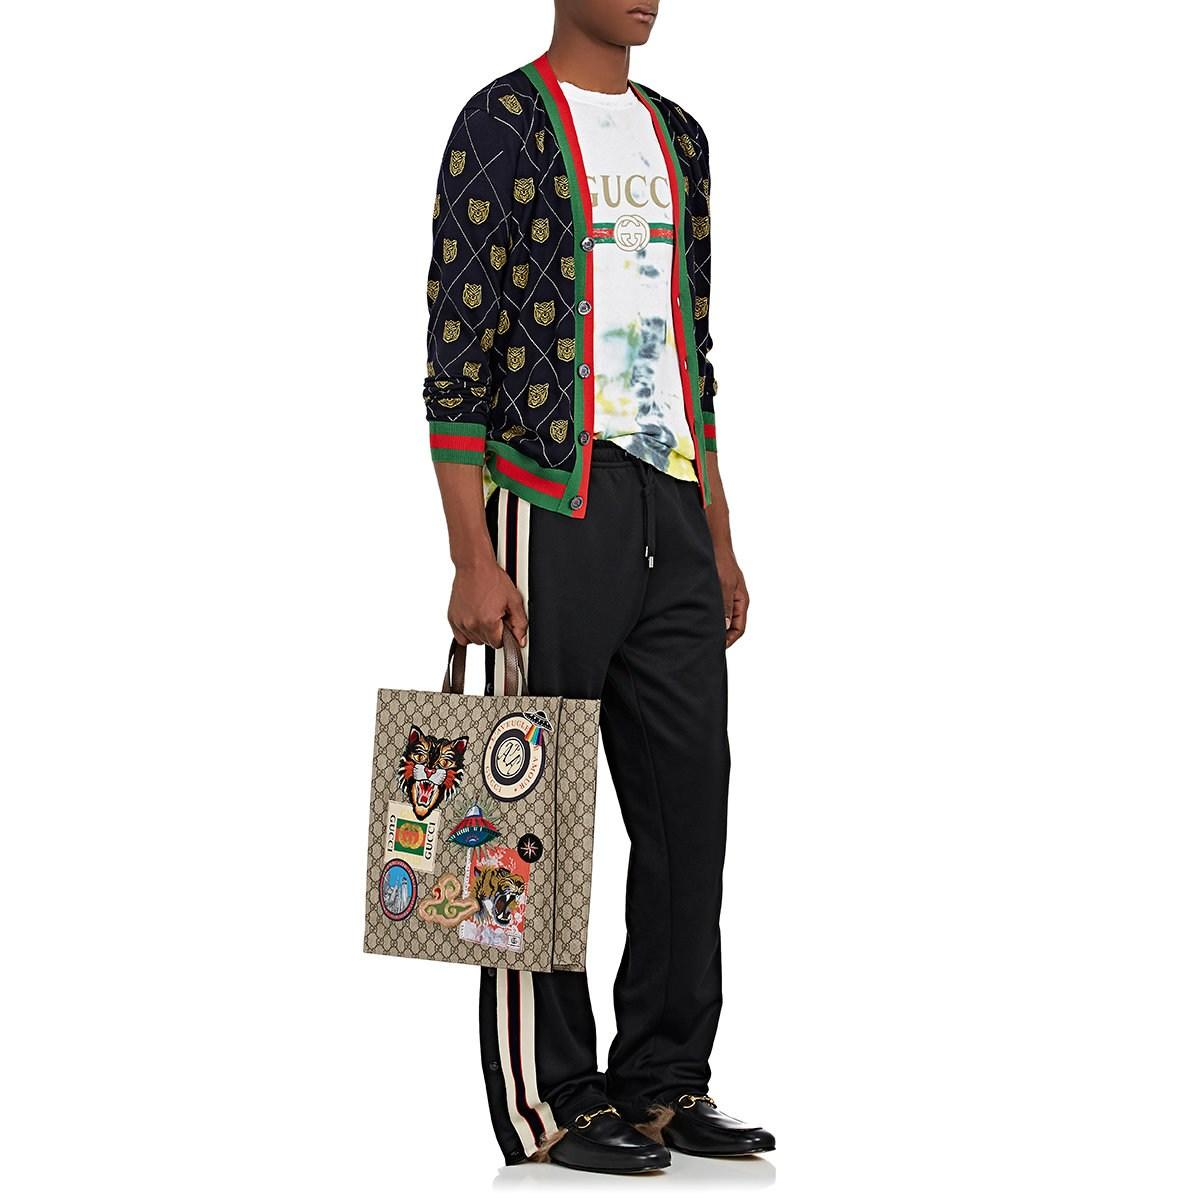 402f82dbdfba Gucci - Natural Appliquéd GG Supreme Shopper Tote Bag for Men - Lyst. View  fullscreen